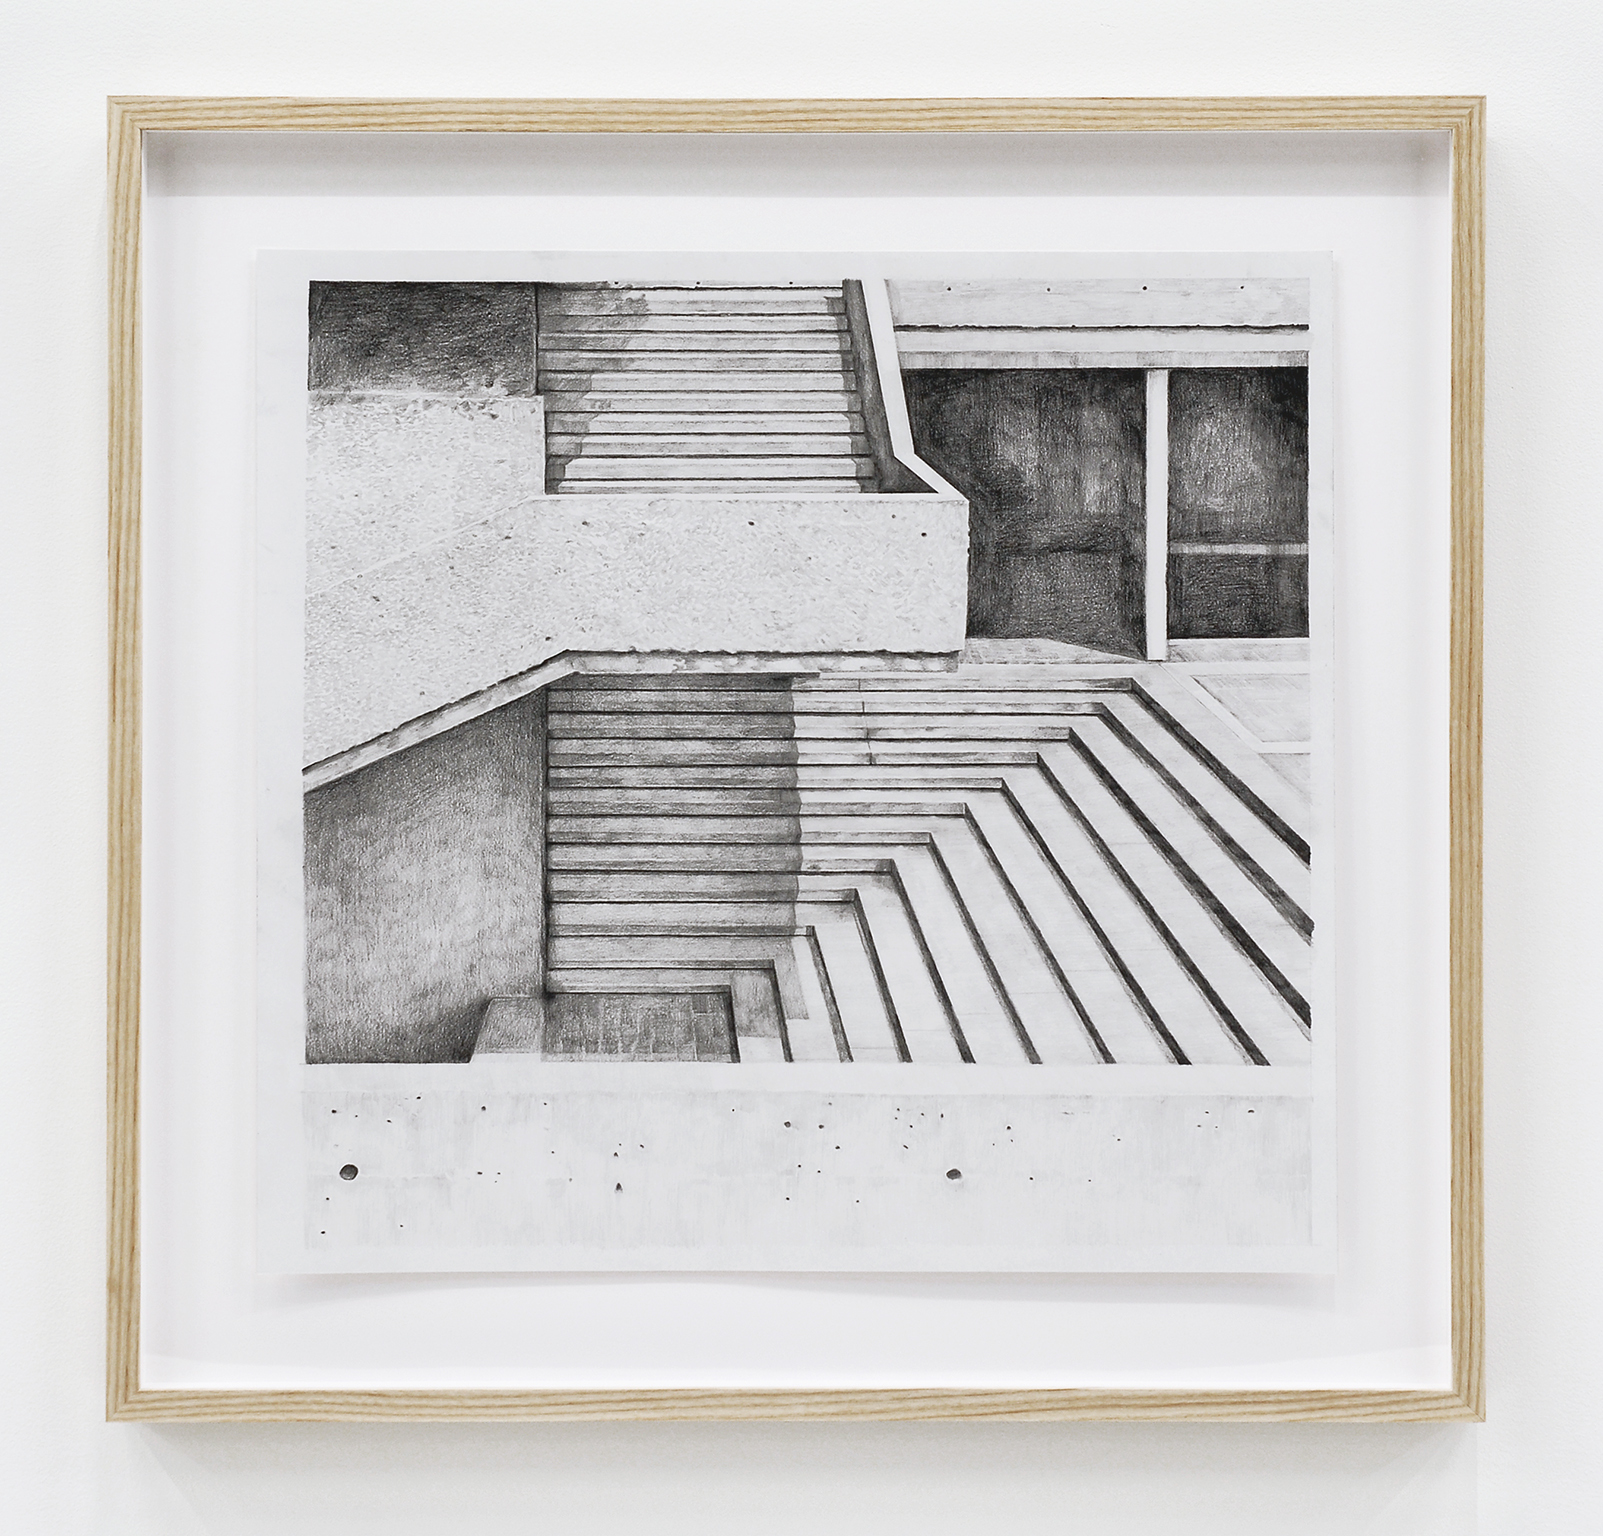 Alex Morrison, The Poetics of Grey (No. 11), 2007, graphite on paper, 25 x 21 in. (63 x 53 cm) by